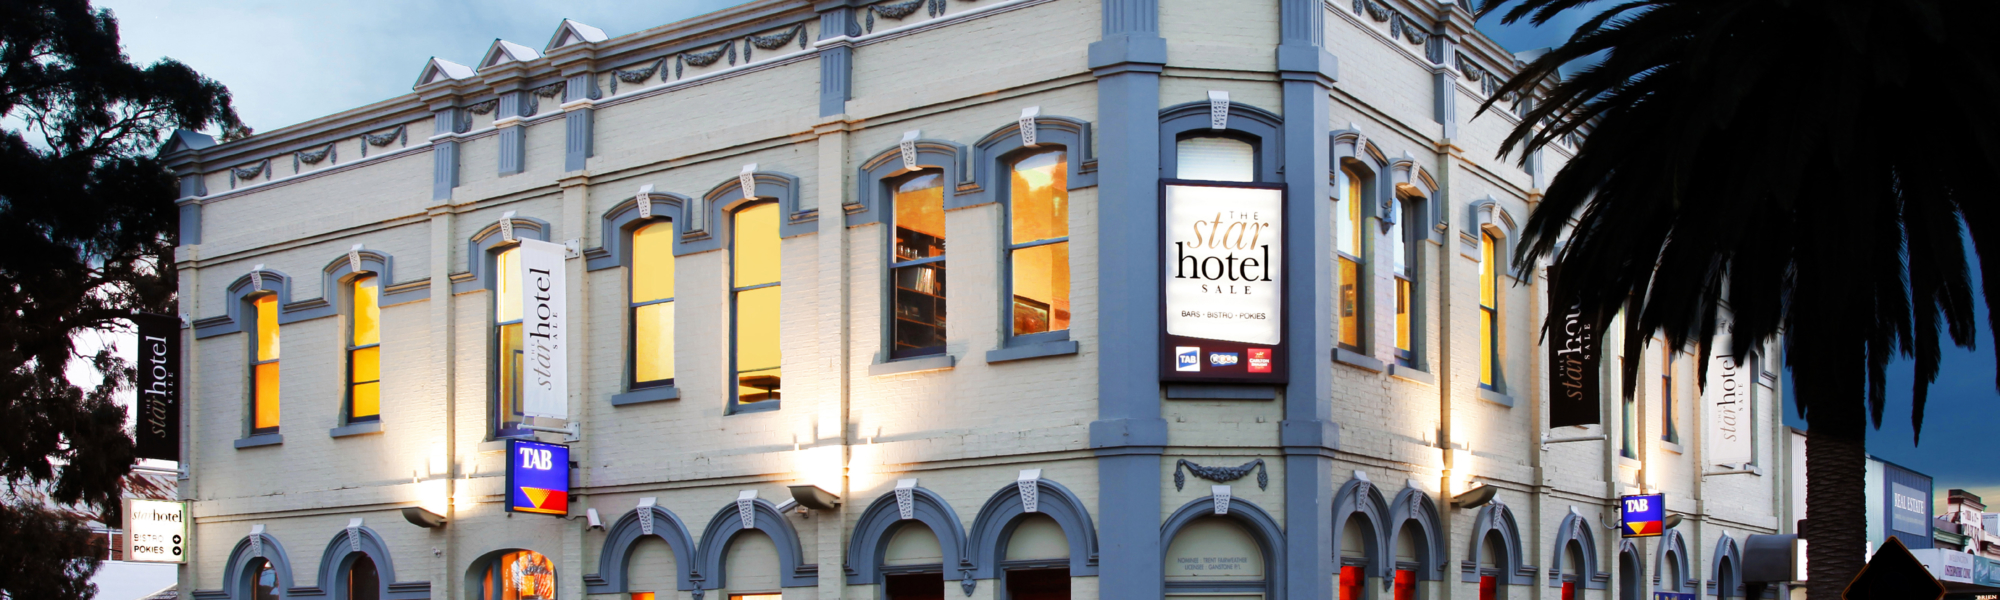 Star Hotel Sale exterior slightly smaller with logo copy